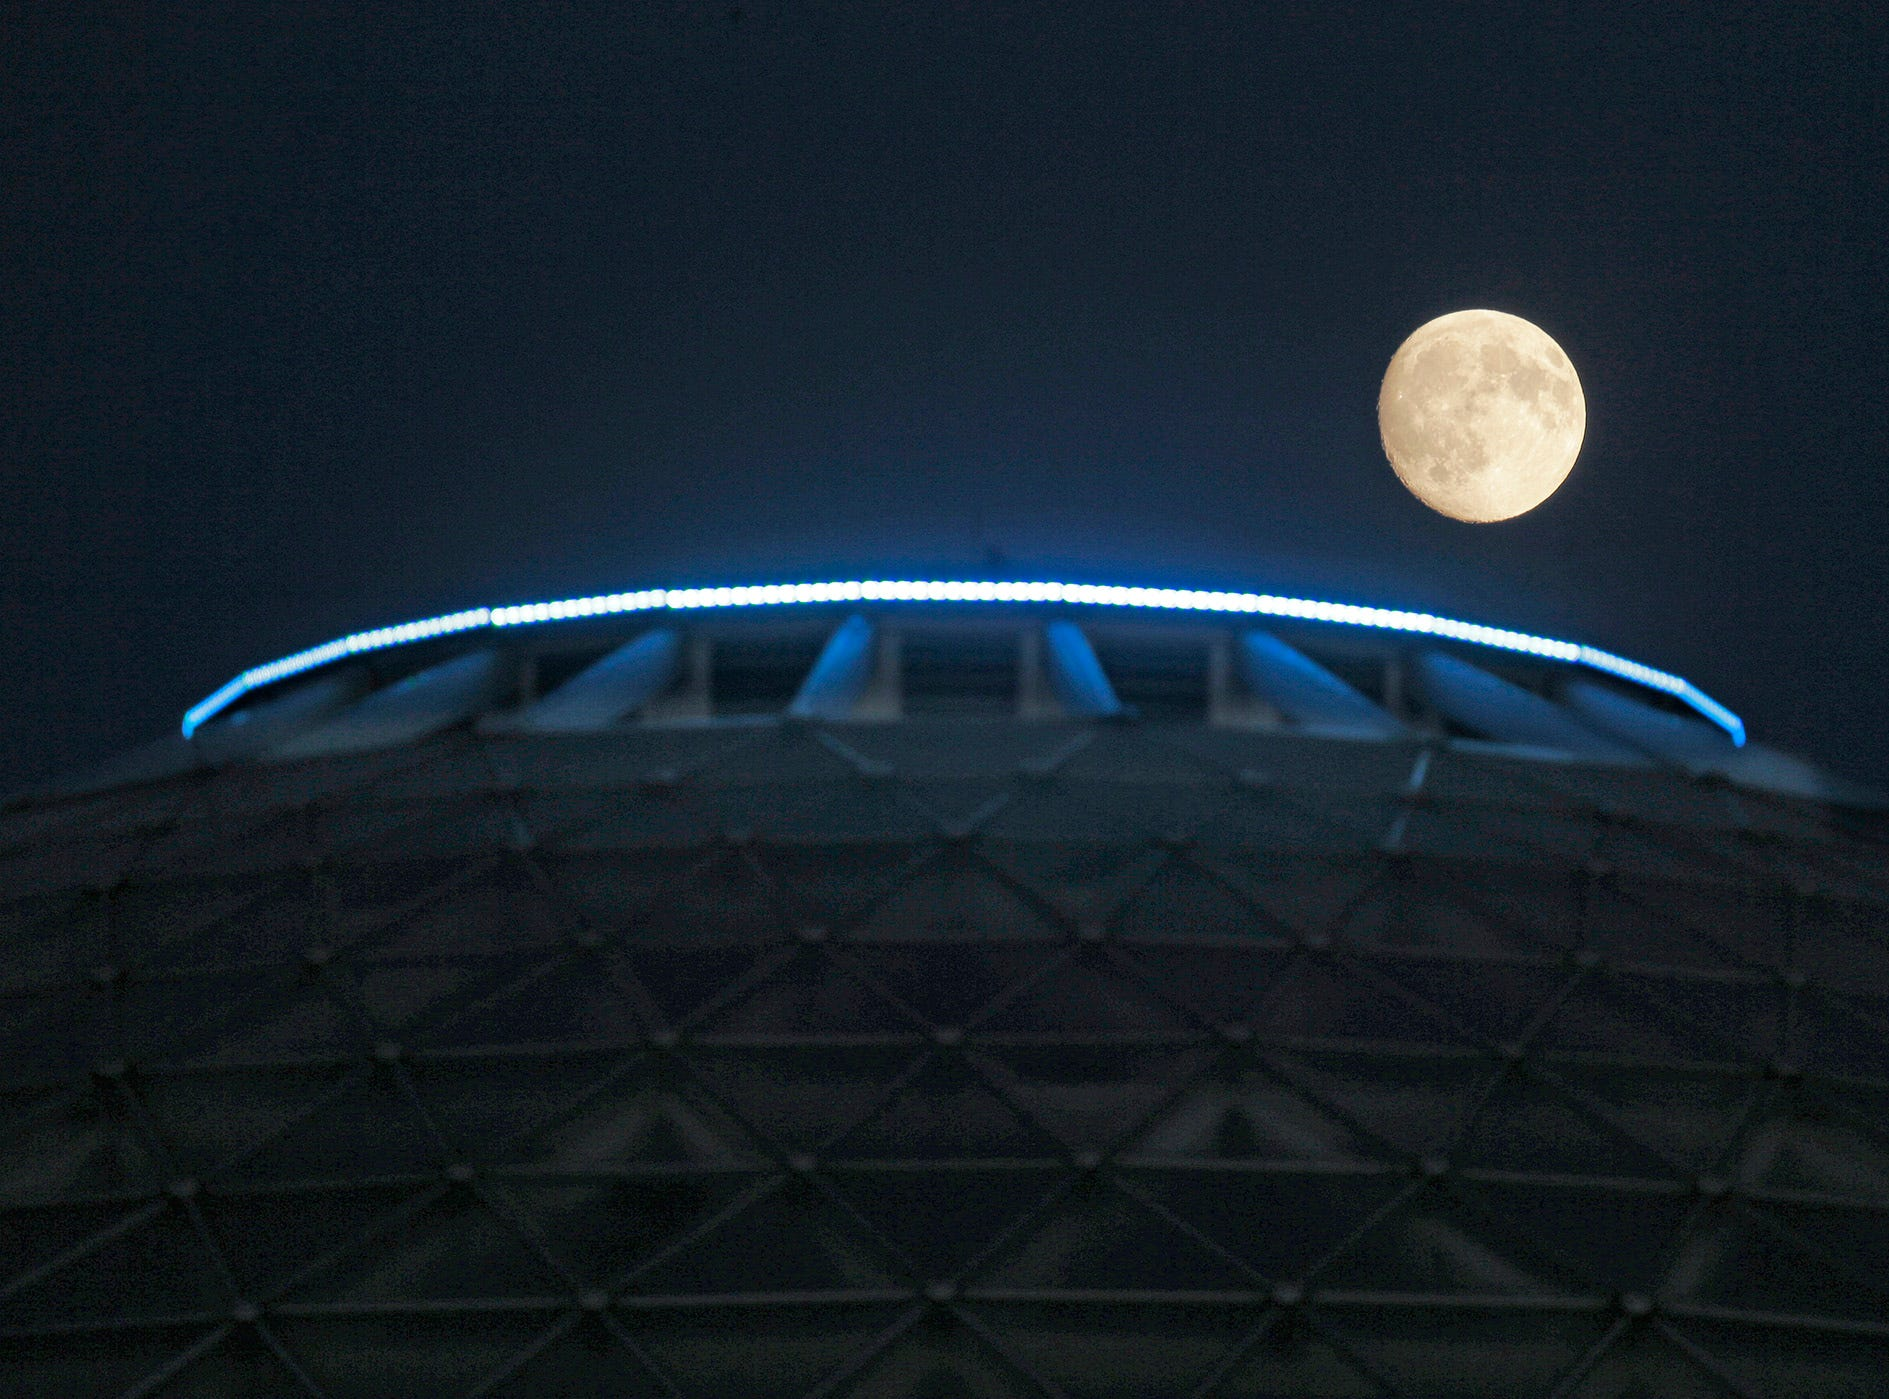 The moon rises over the the Domes at the Mitchell Park Conservatory in Milwaukee Sept. 14, 2016.